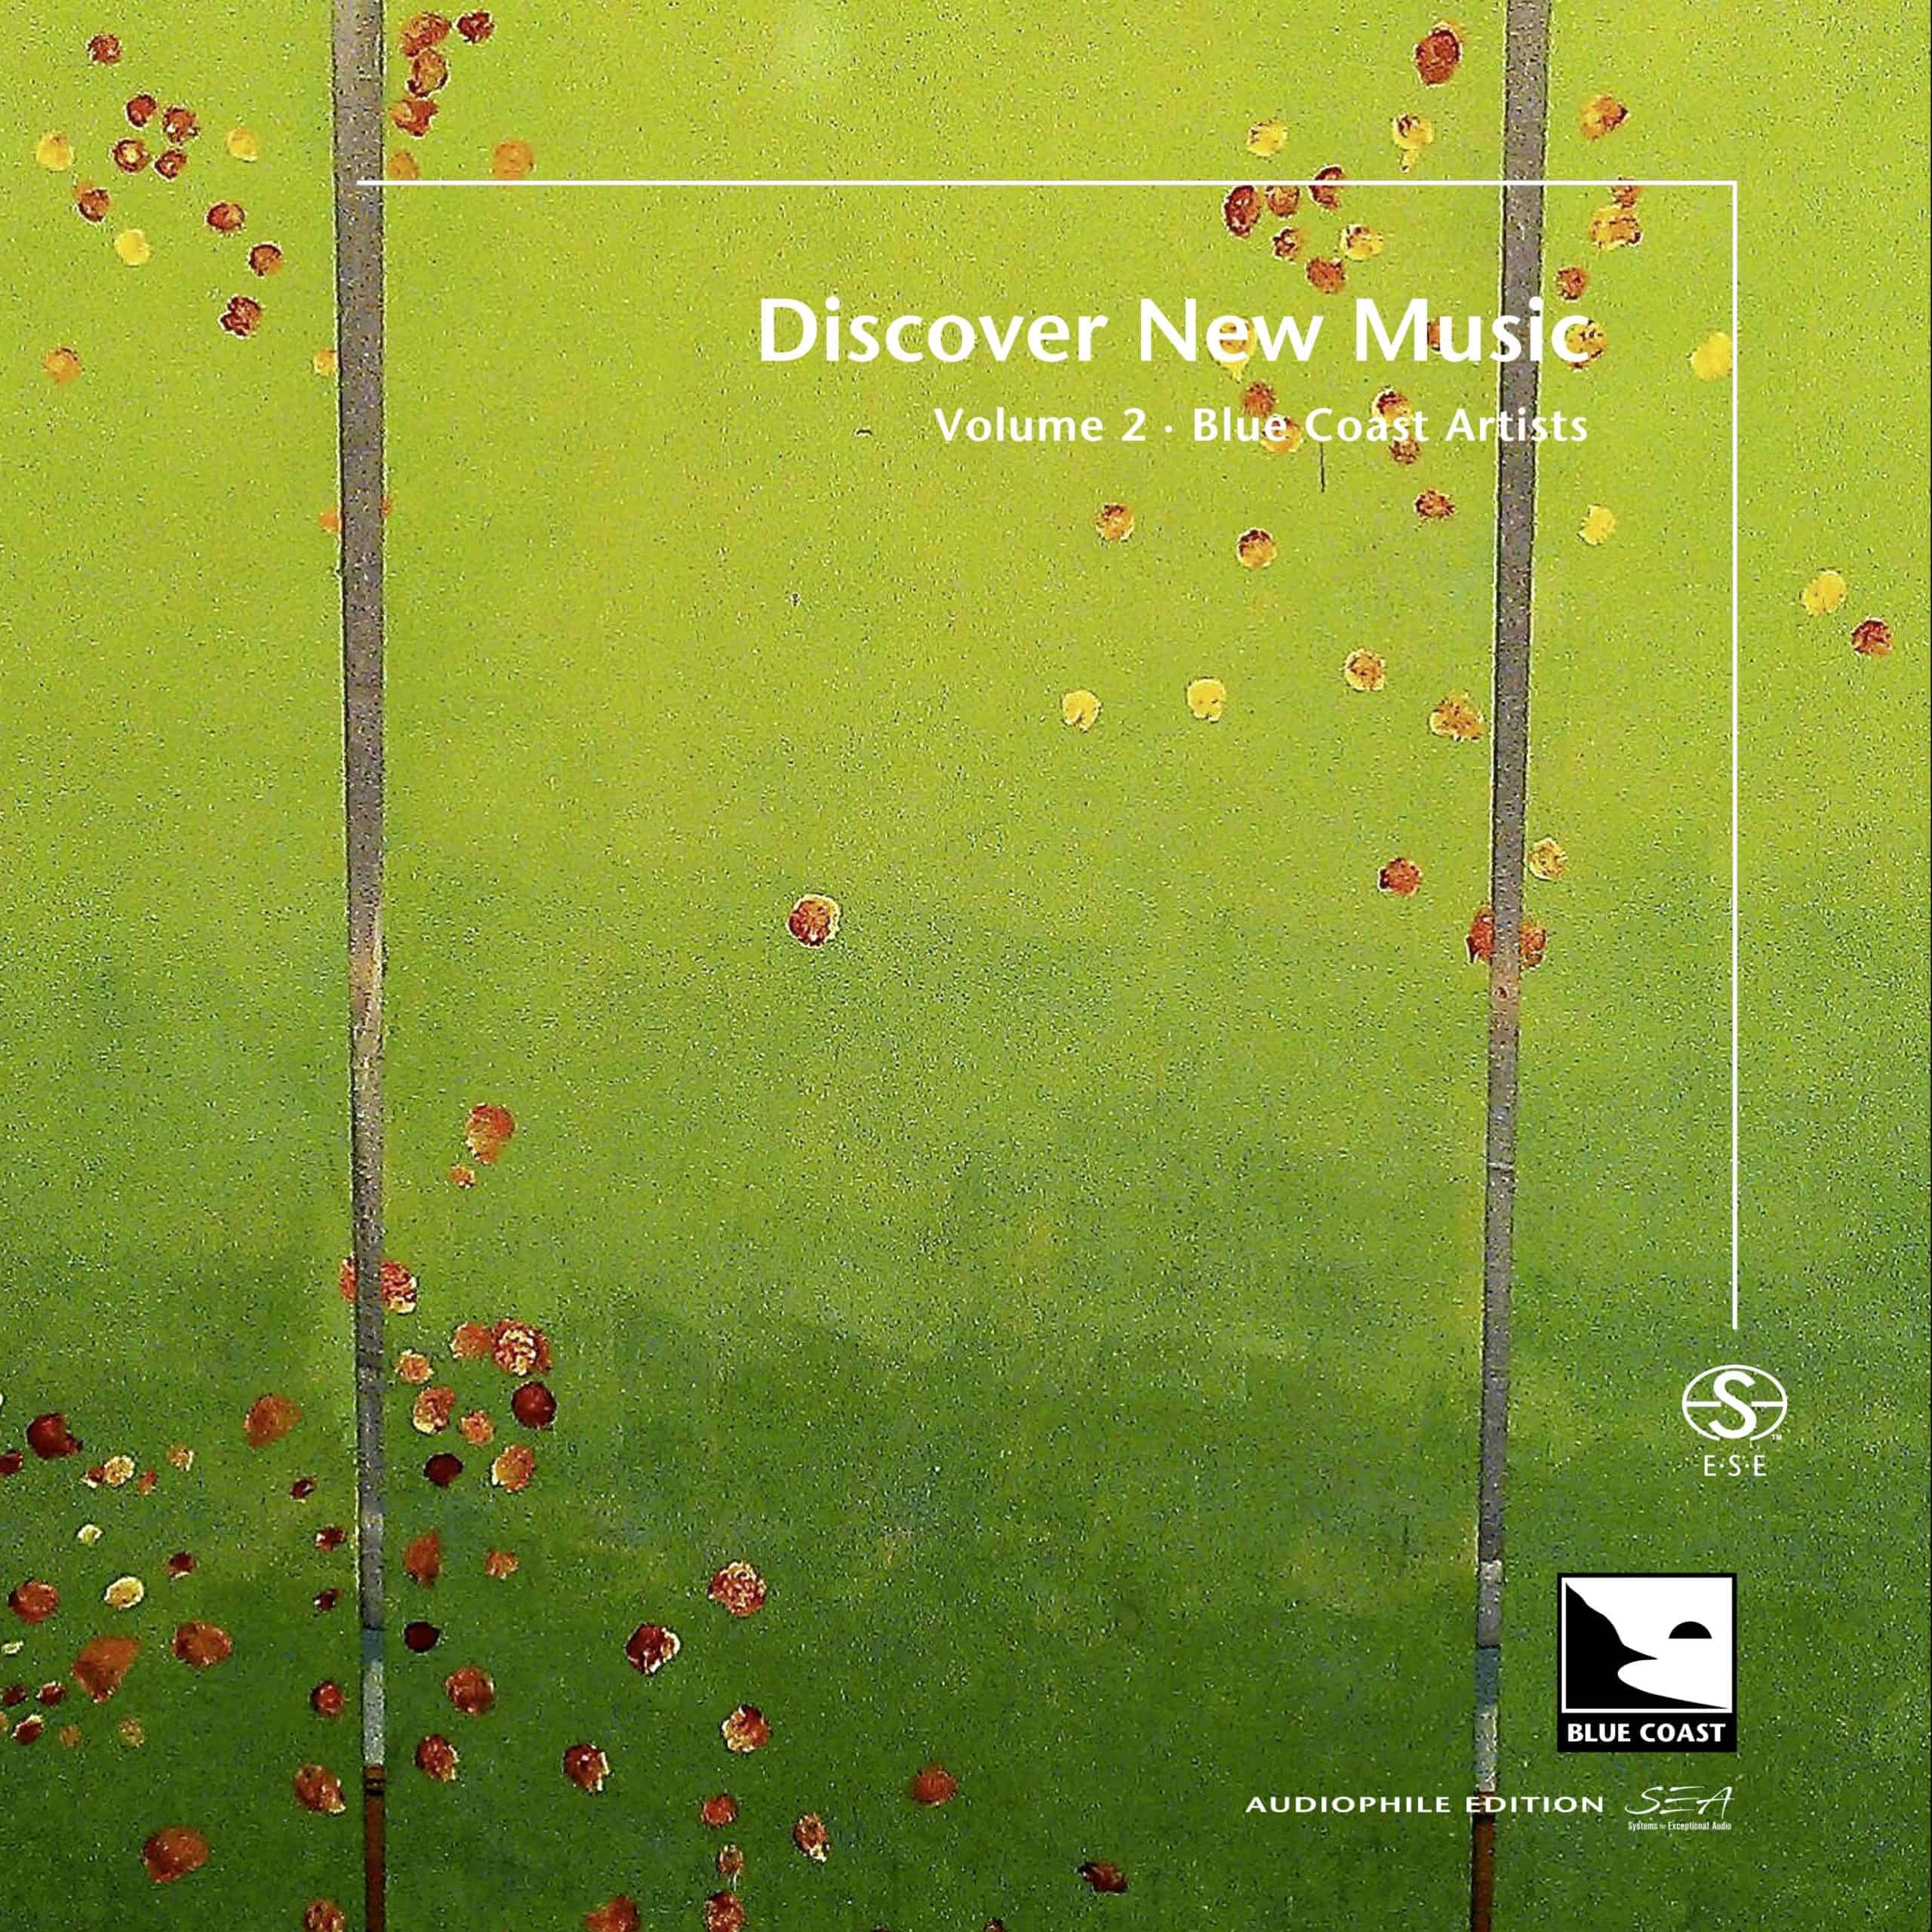 Discover New Music Vol. 2